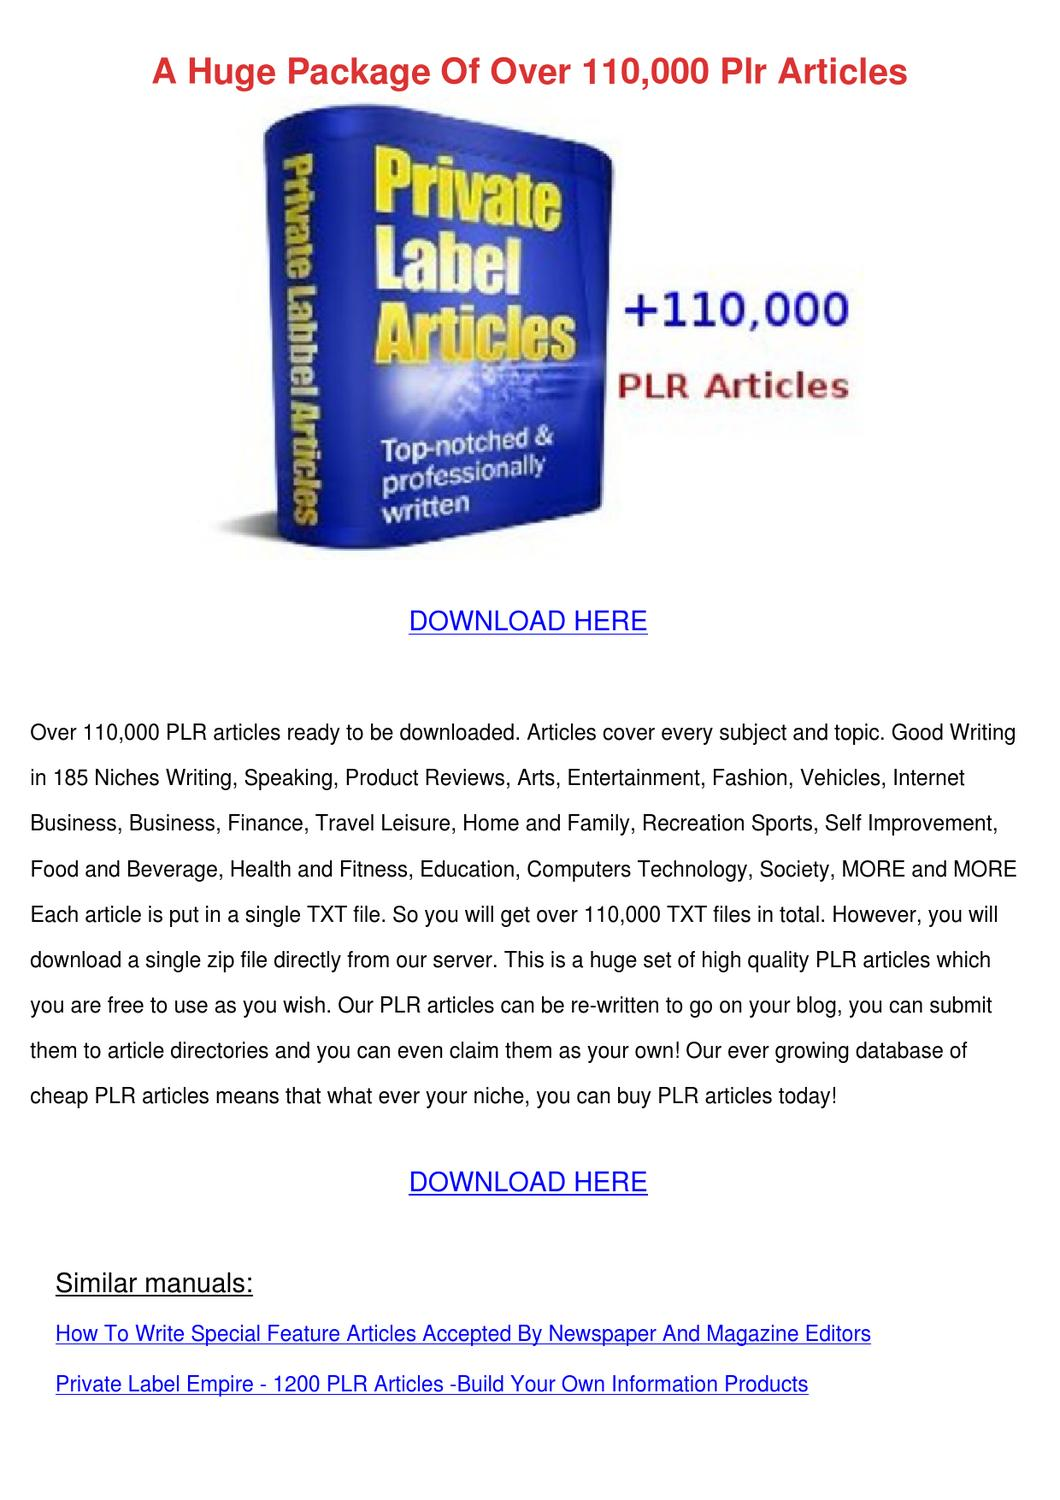 A Huge Package Of Over 110000 Plr Articles by Trudie Kaczor